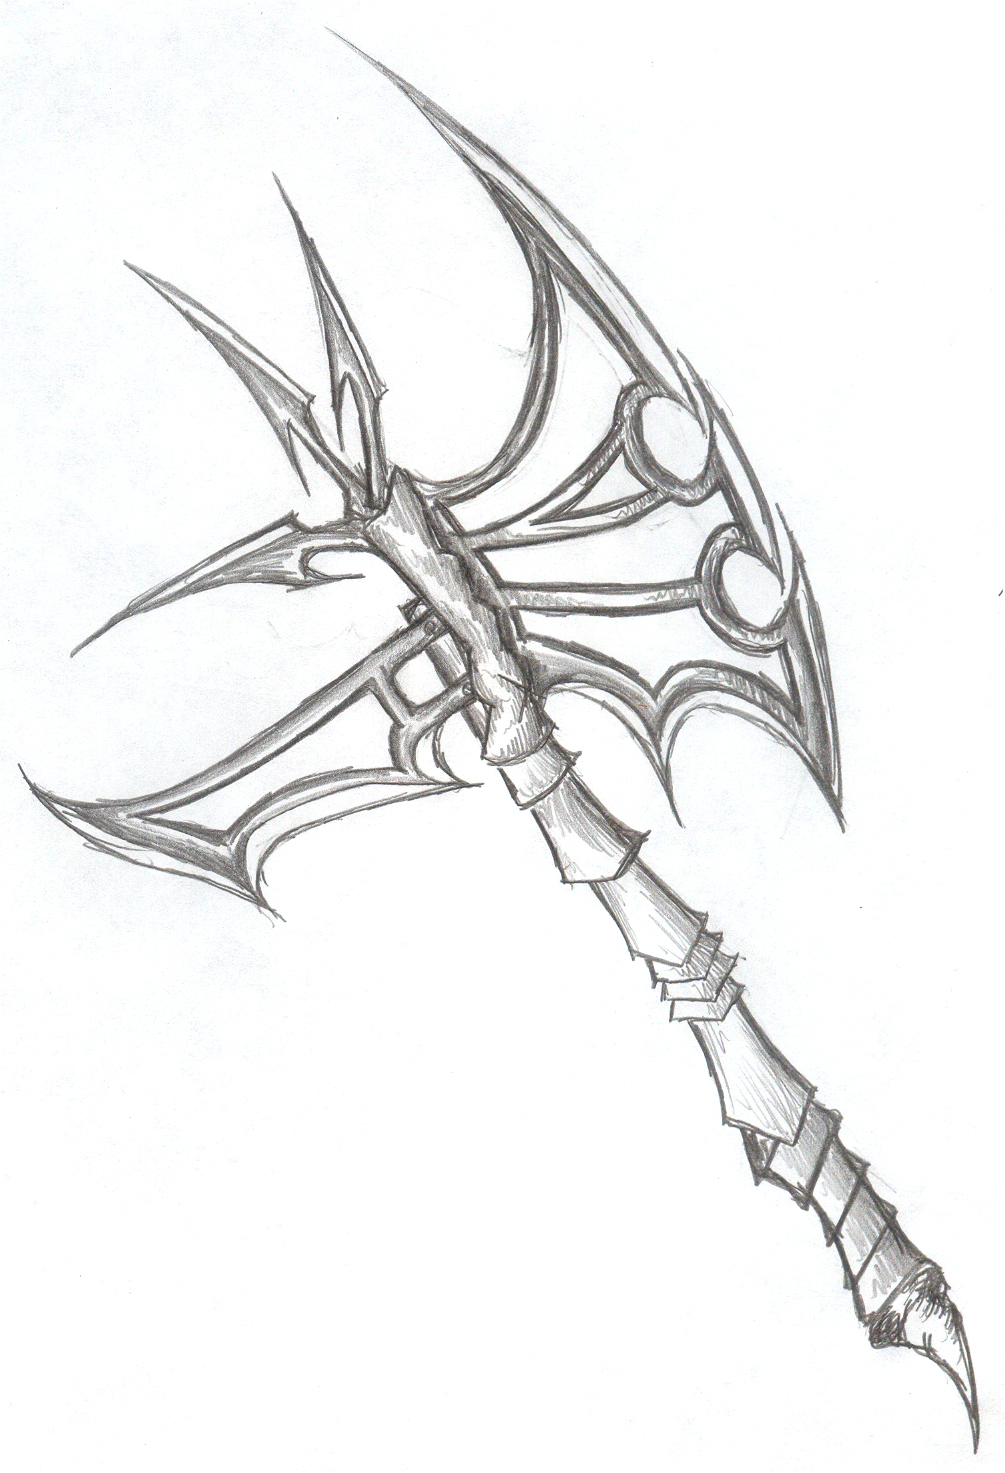 Drawn axe Axe Valgrisk on Axe Axe